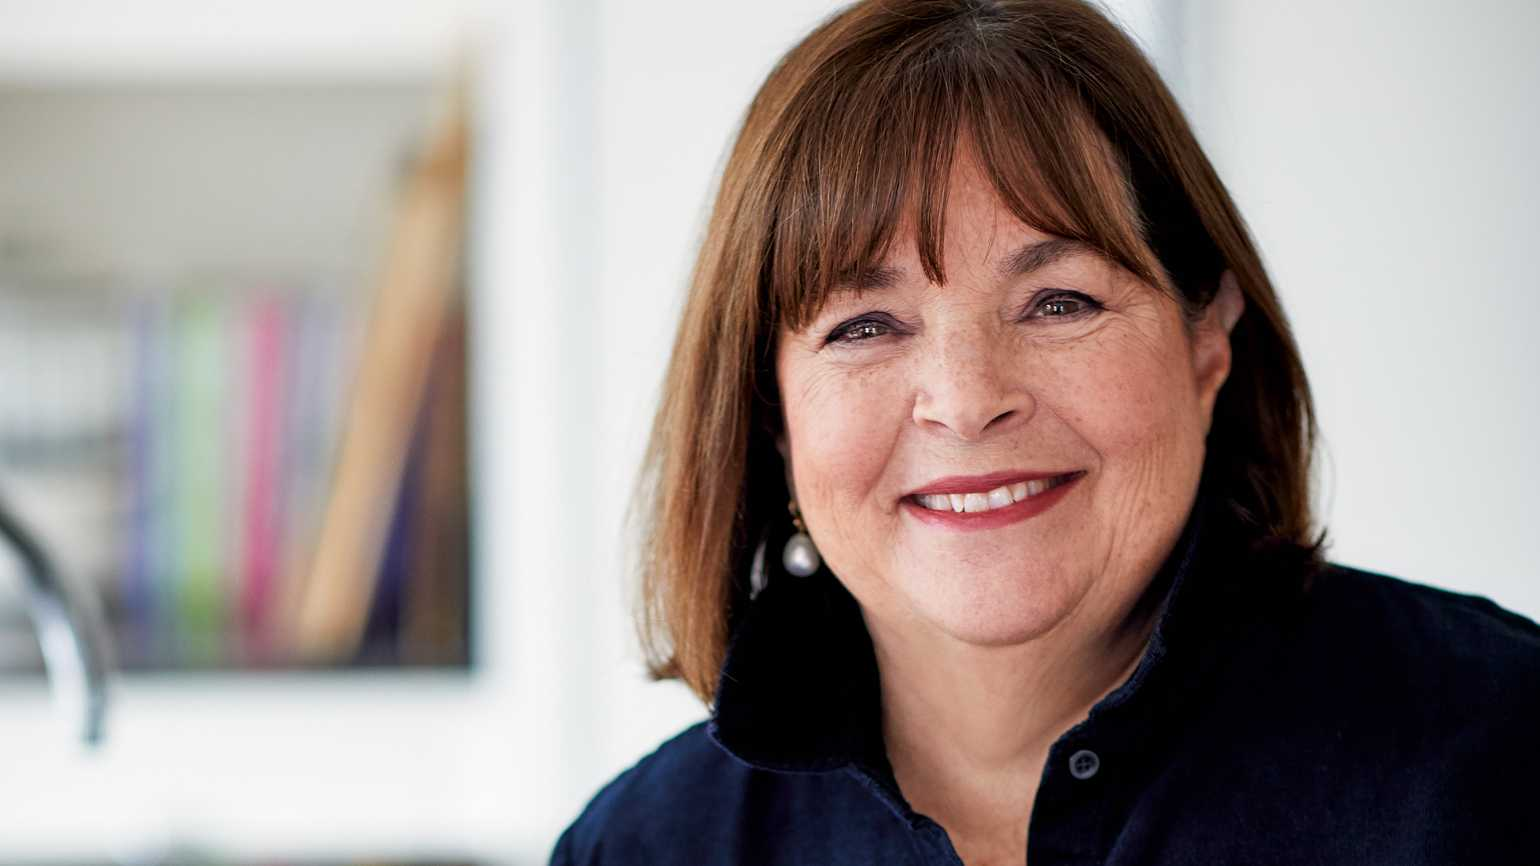 Ina Garten. Photo credit: Quentin Bacon